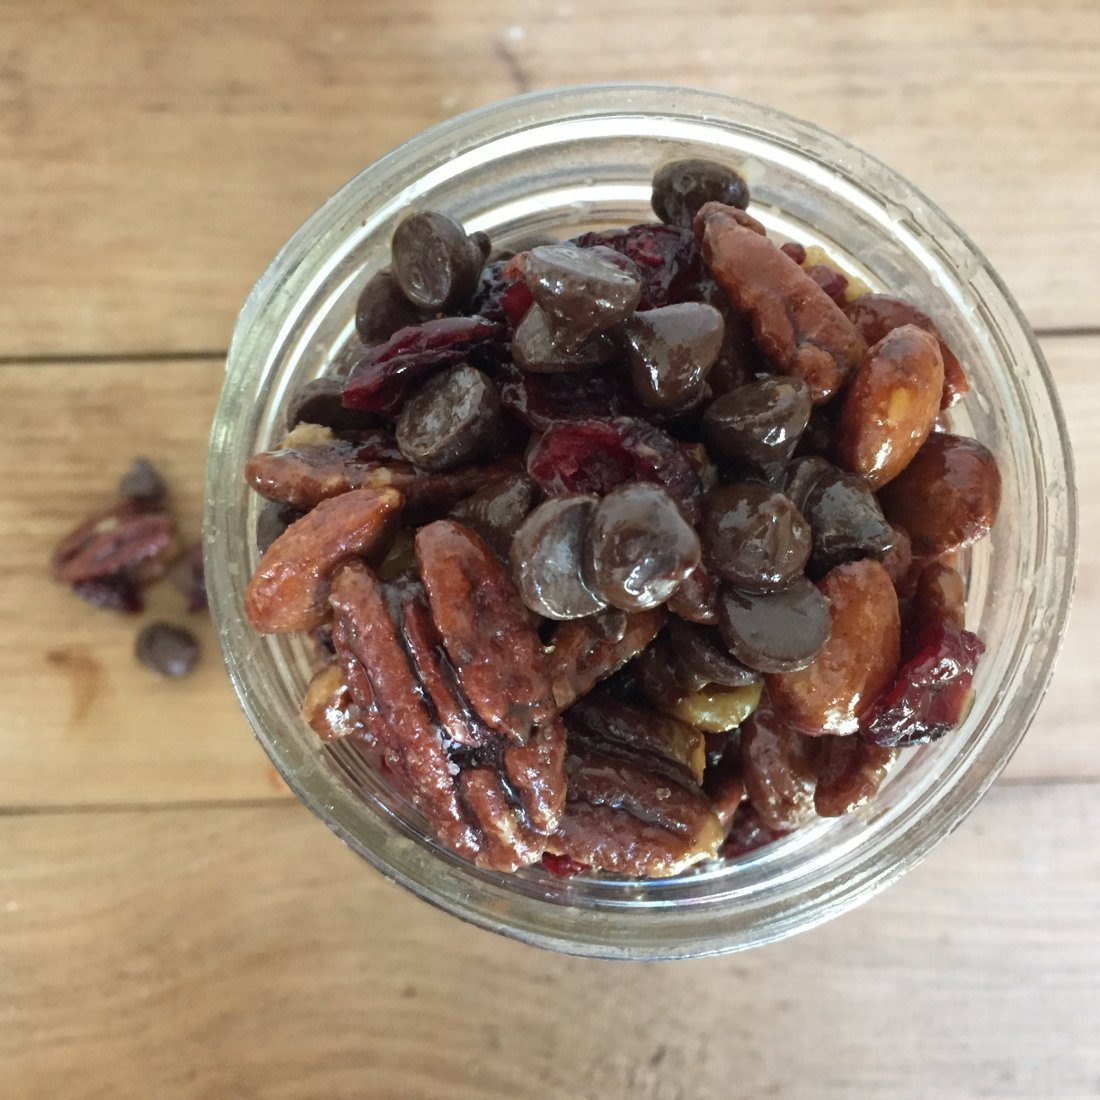 Recipe of the Week: Maple Nut Trail Mix